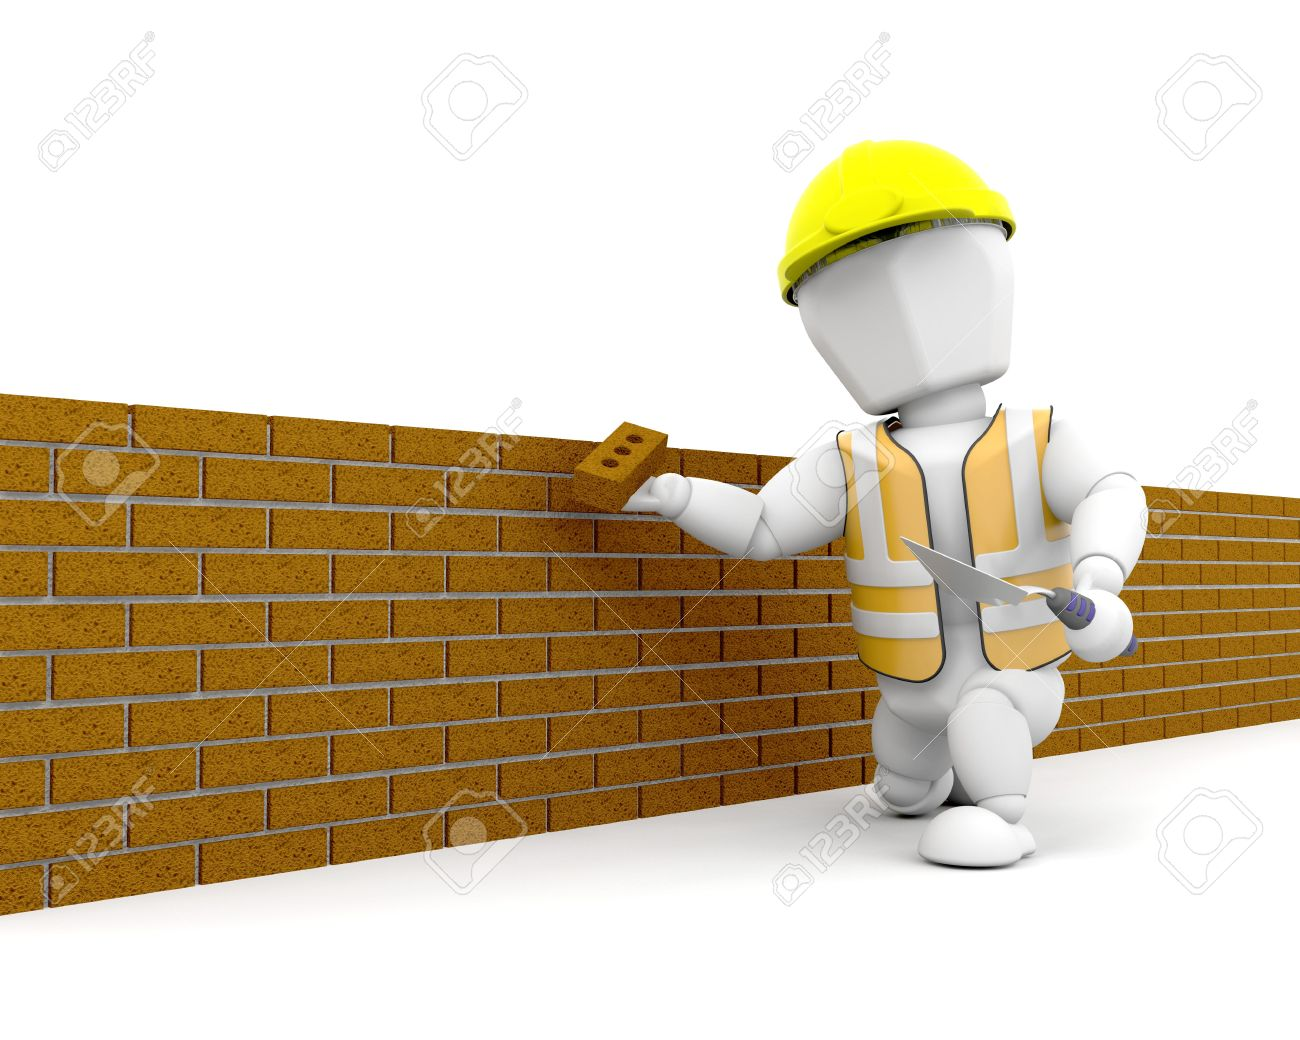 3D Render Of A Person Building Brick Wall Stock Photo